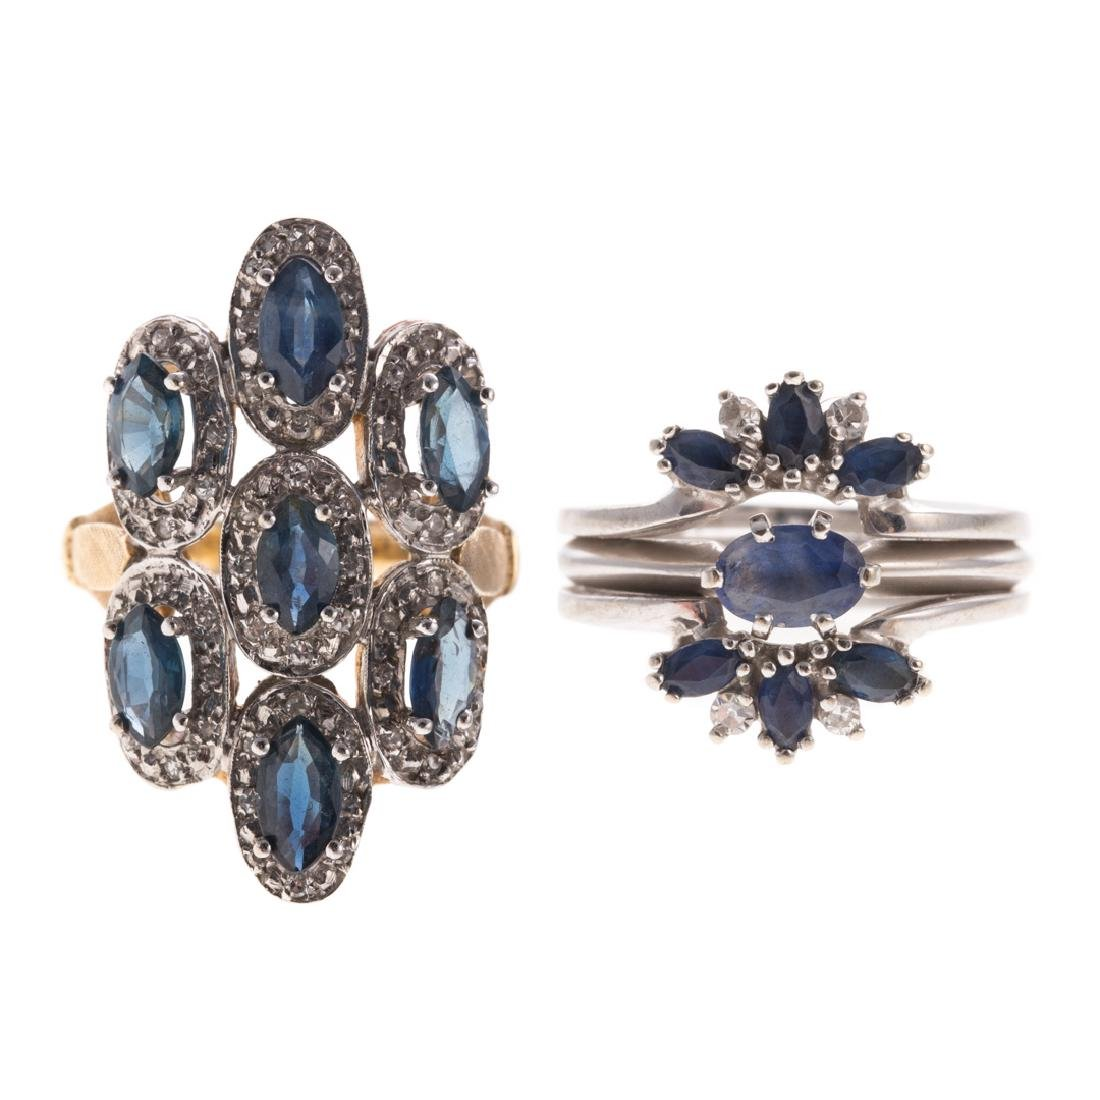 A Pair of Lady's Sapphire & Diamond Rings in 14K